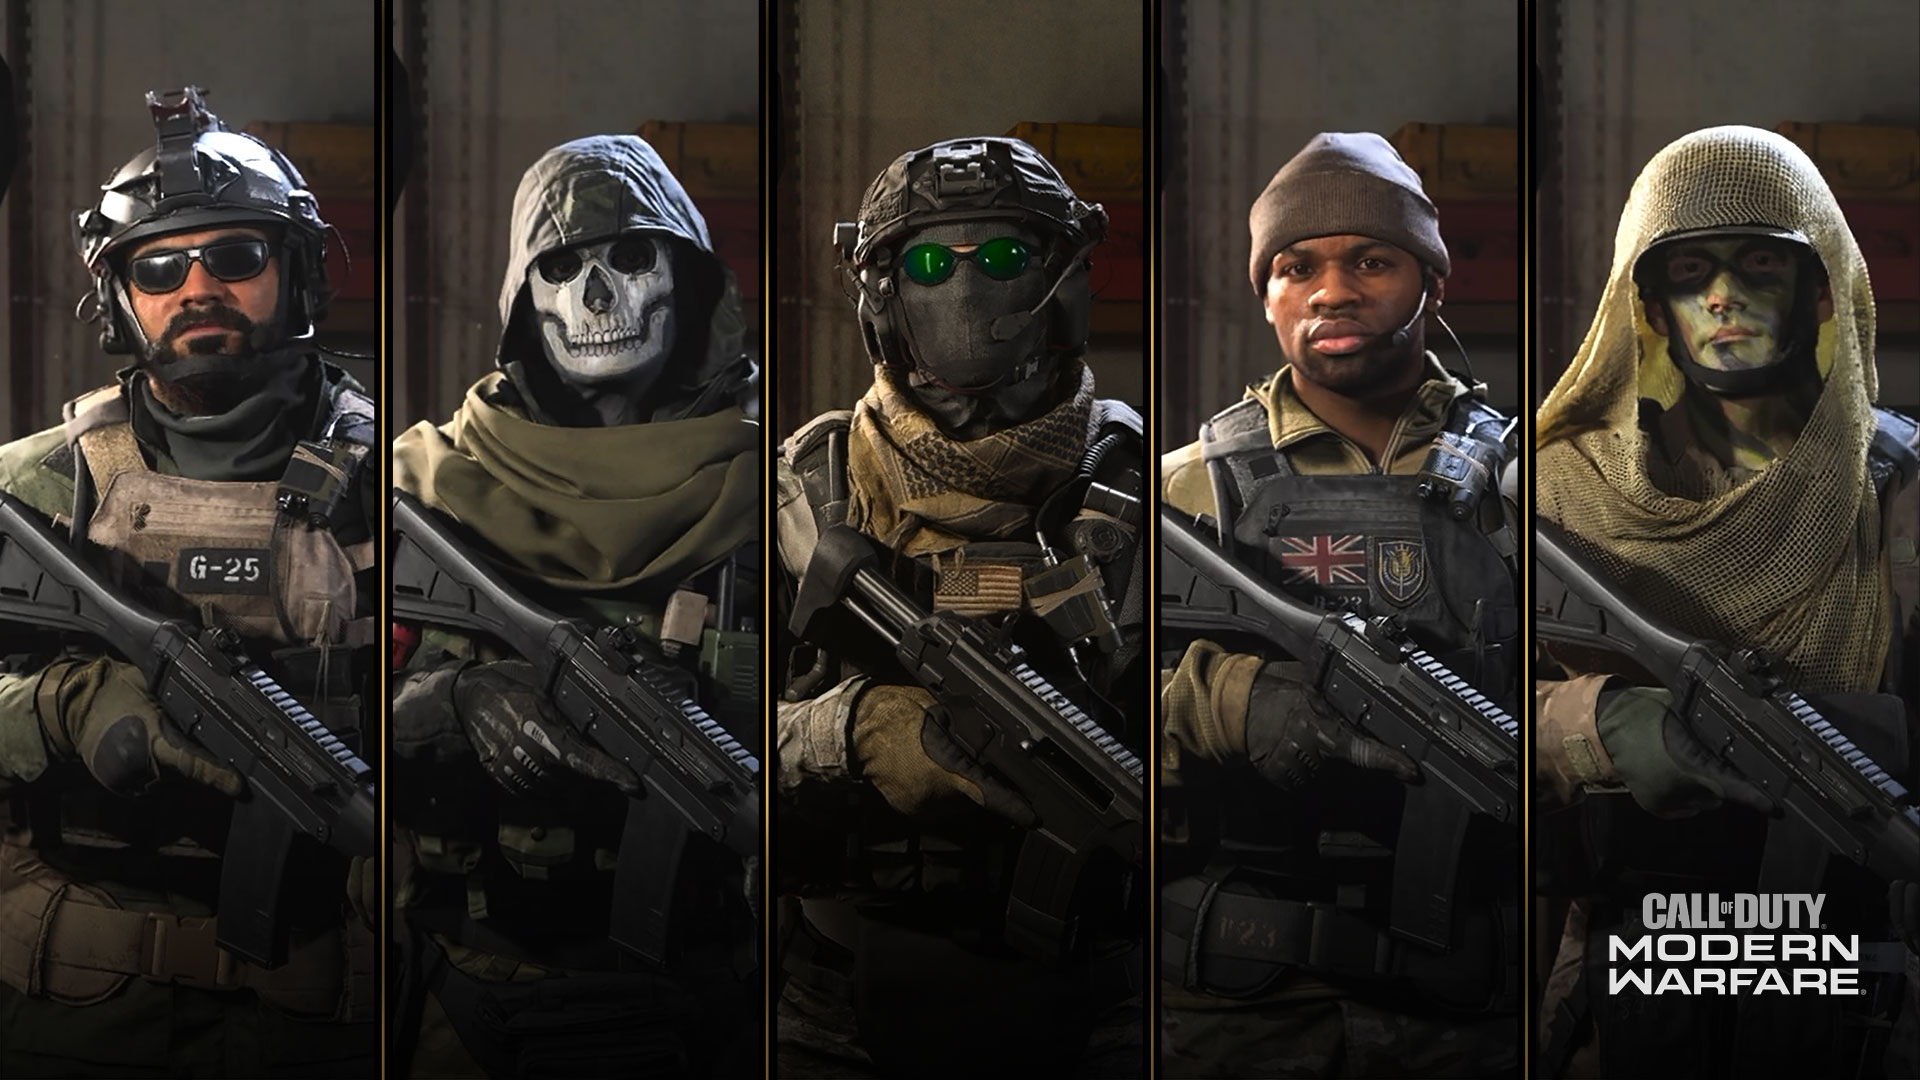 Alex Reinforces The Coalition Operators Of Call Of Duty Modern